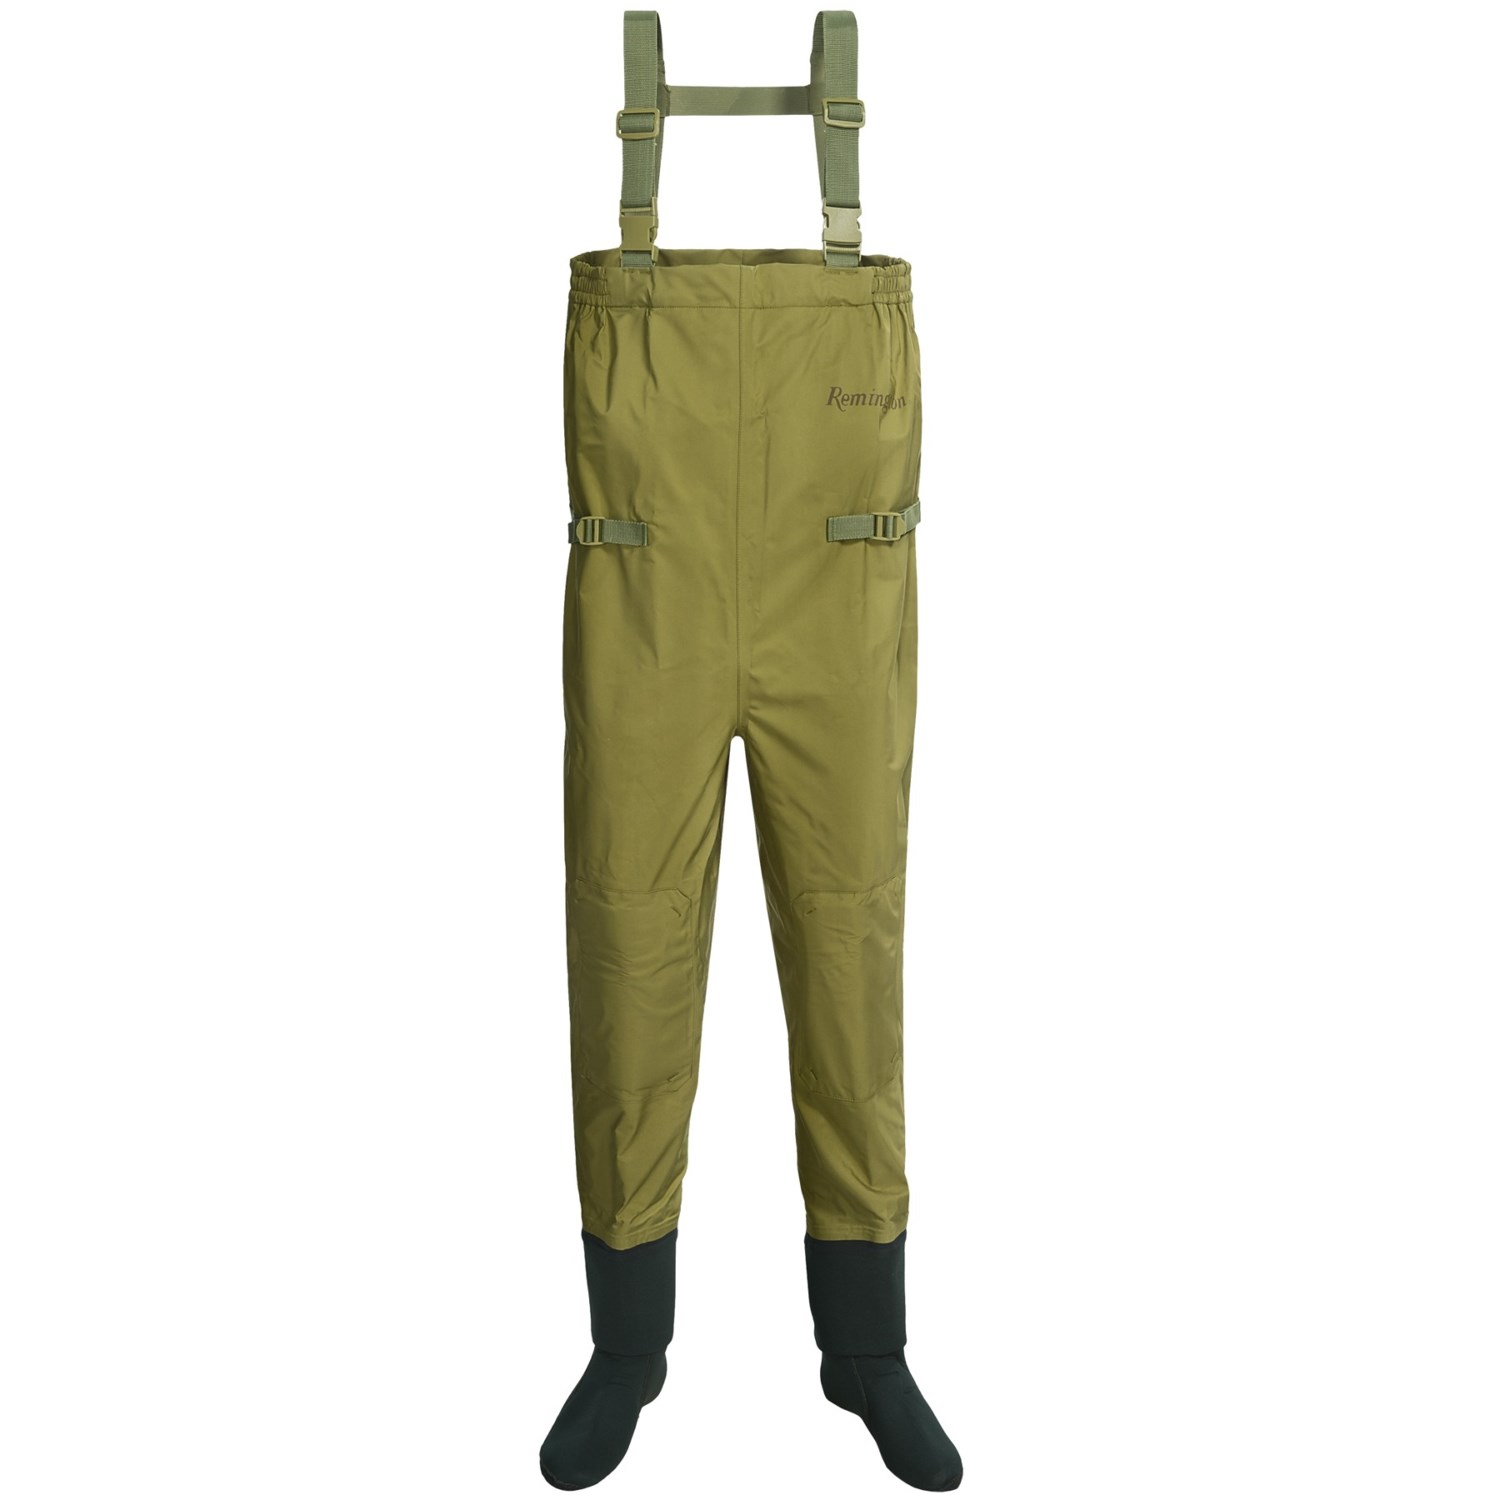 Remington chest waders stockingfoot for men save 66 for Men s fishing waders